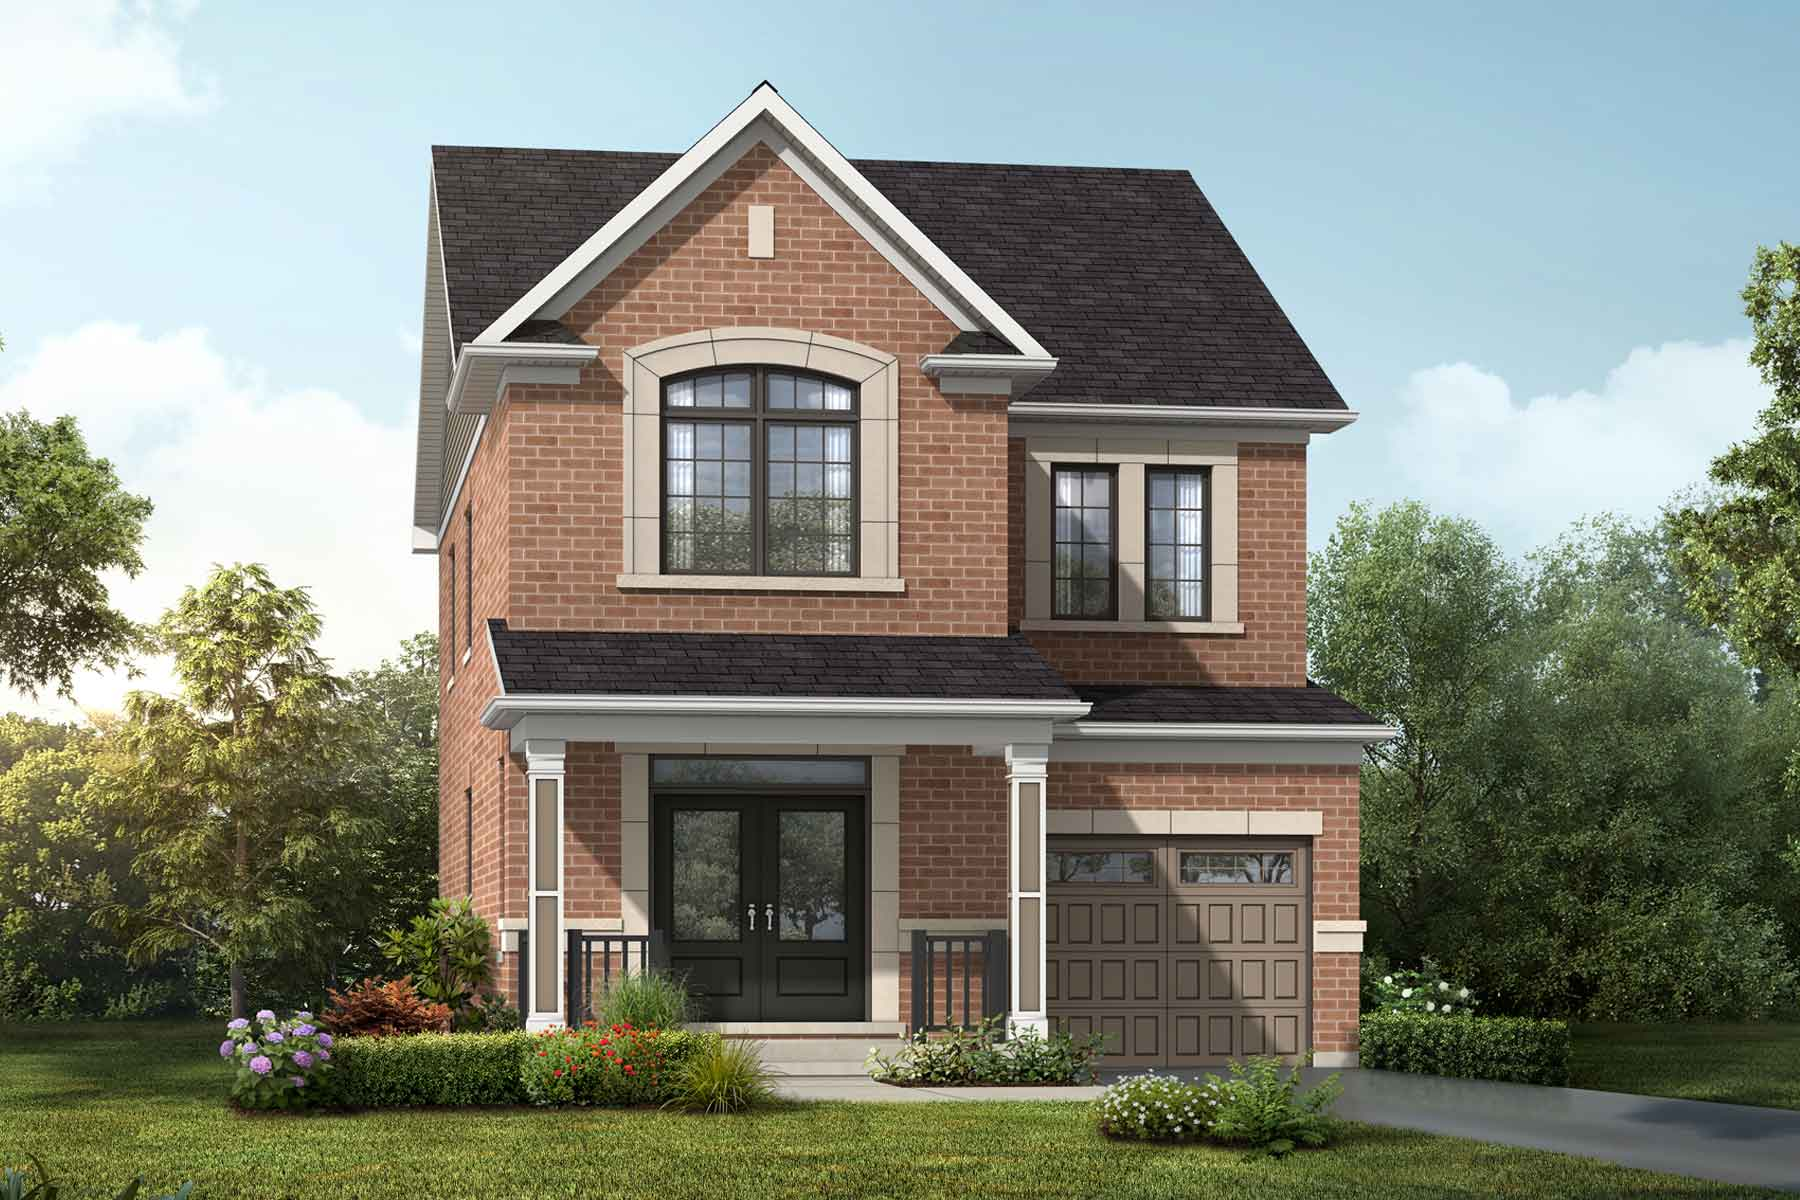 Navy Plan traditional_springwater_navy_main at Springwater in Markham Ontario by Mattamy Homes